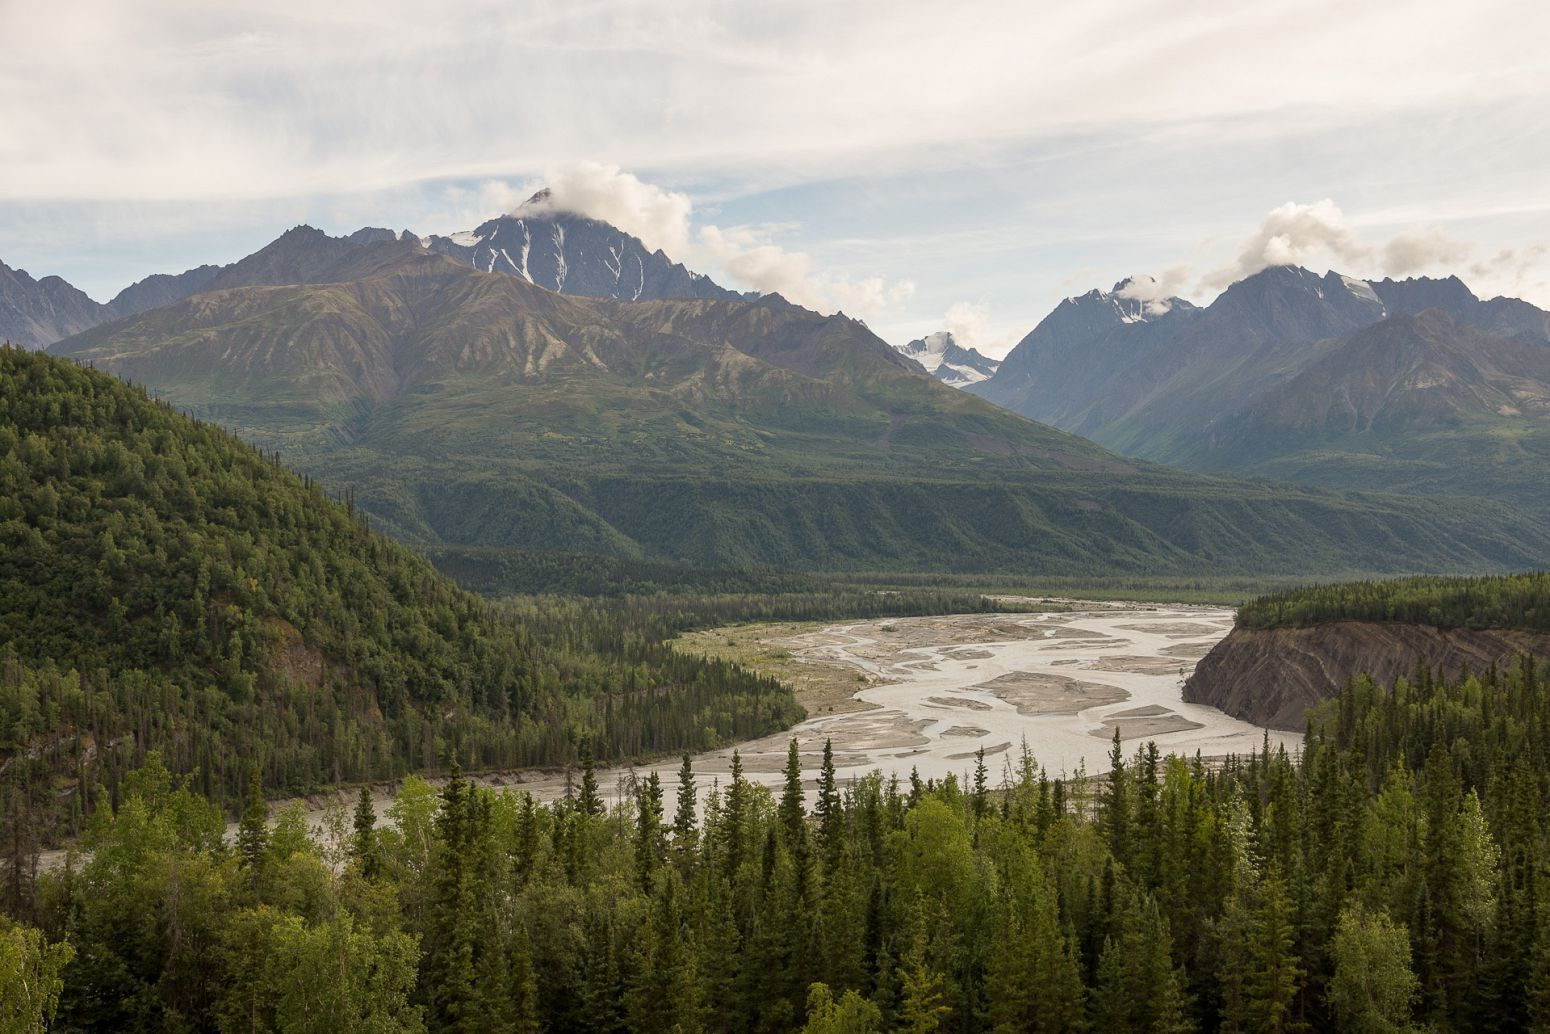 Matanuska River from Glenn Hwy, Alaska, USA